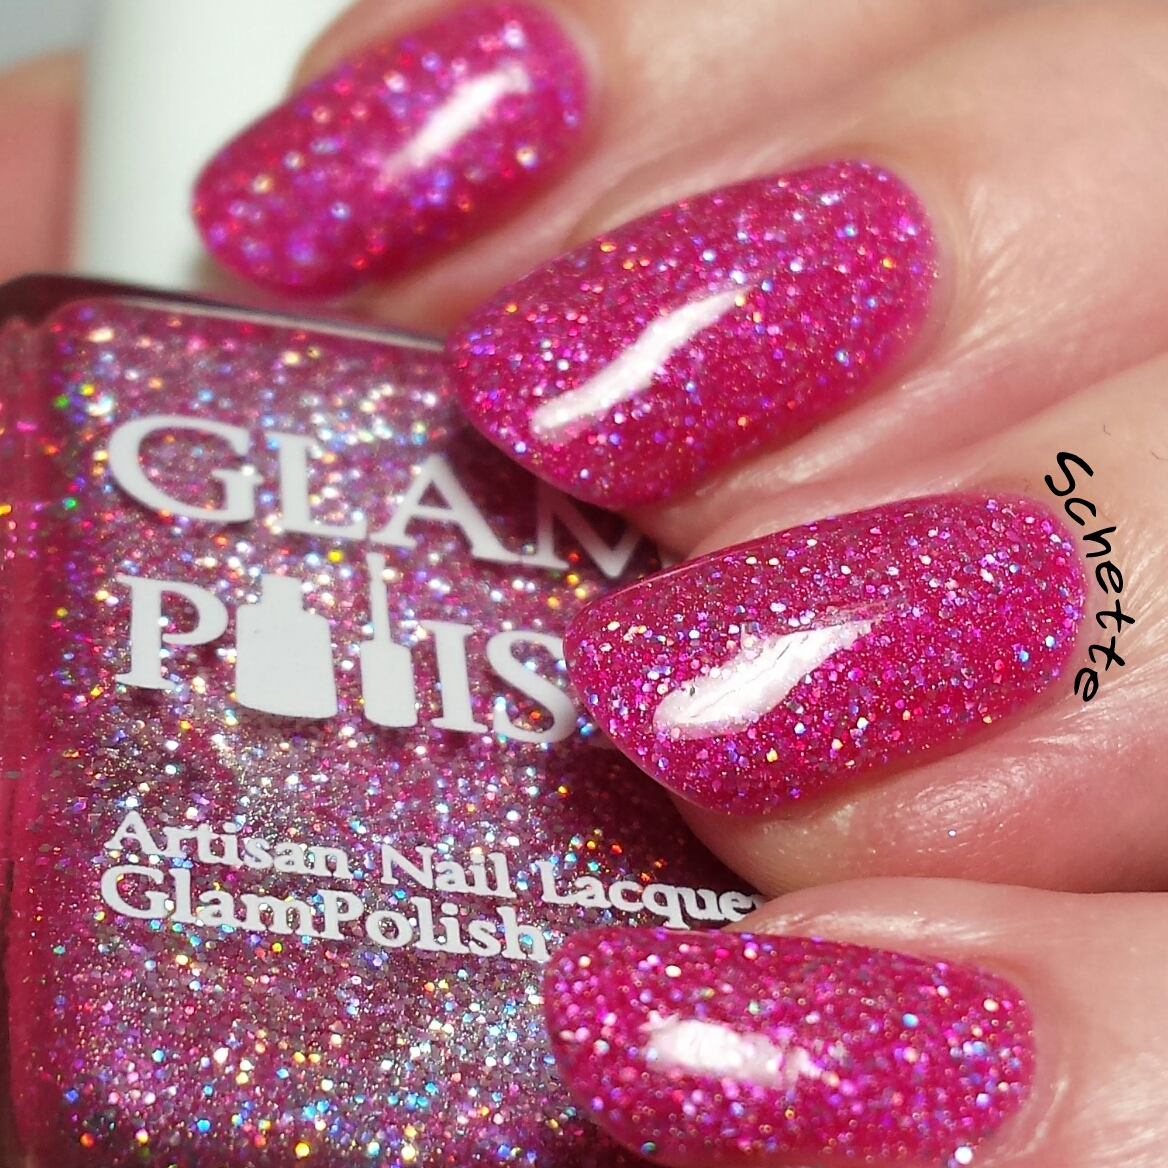 Glam Polish - Cherub